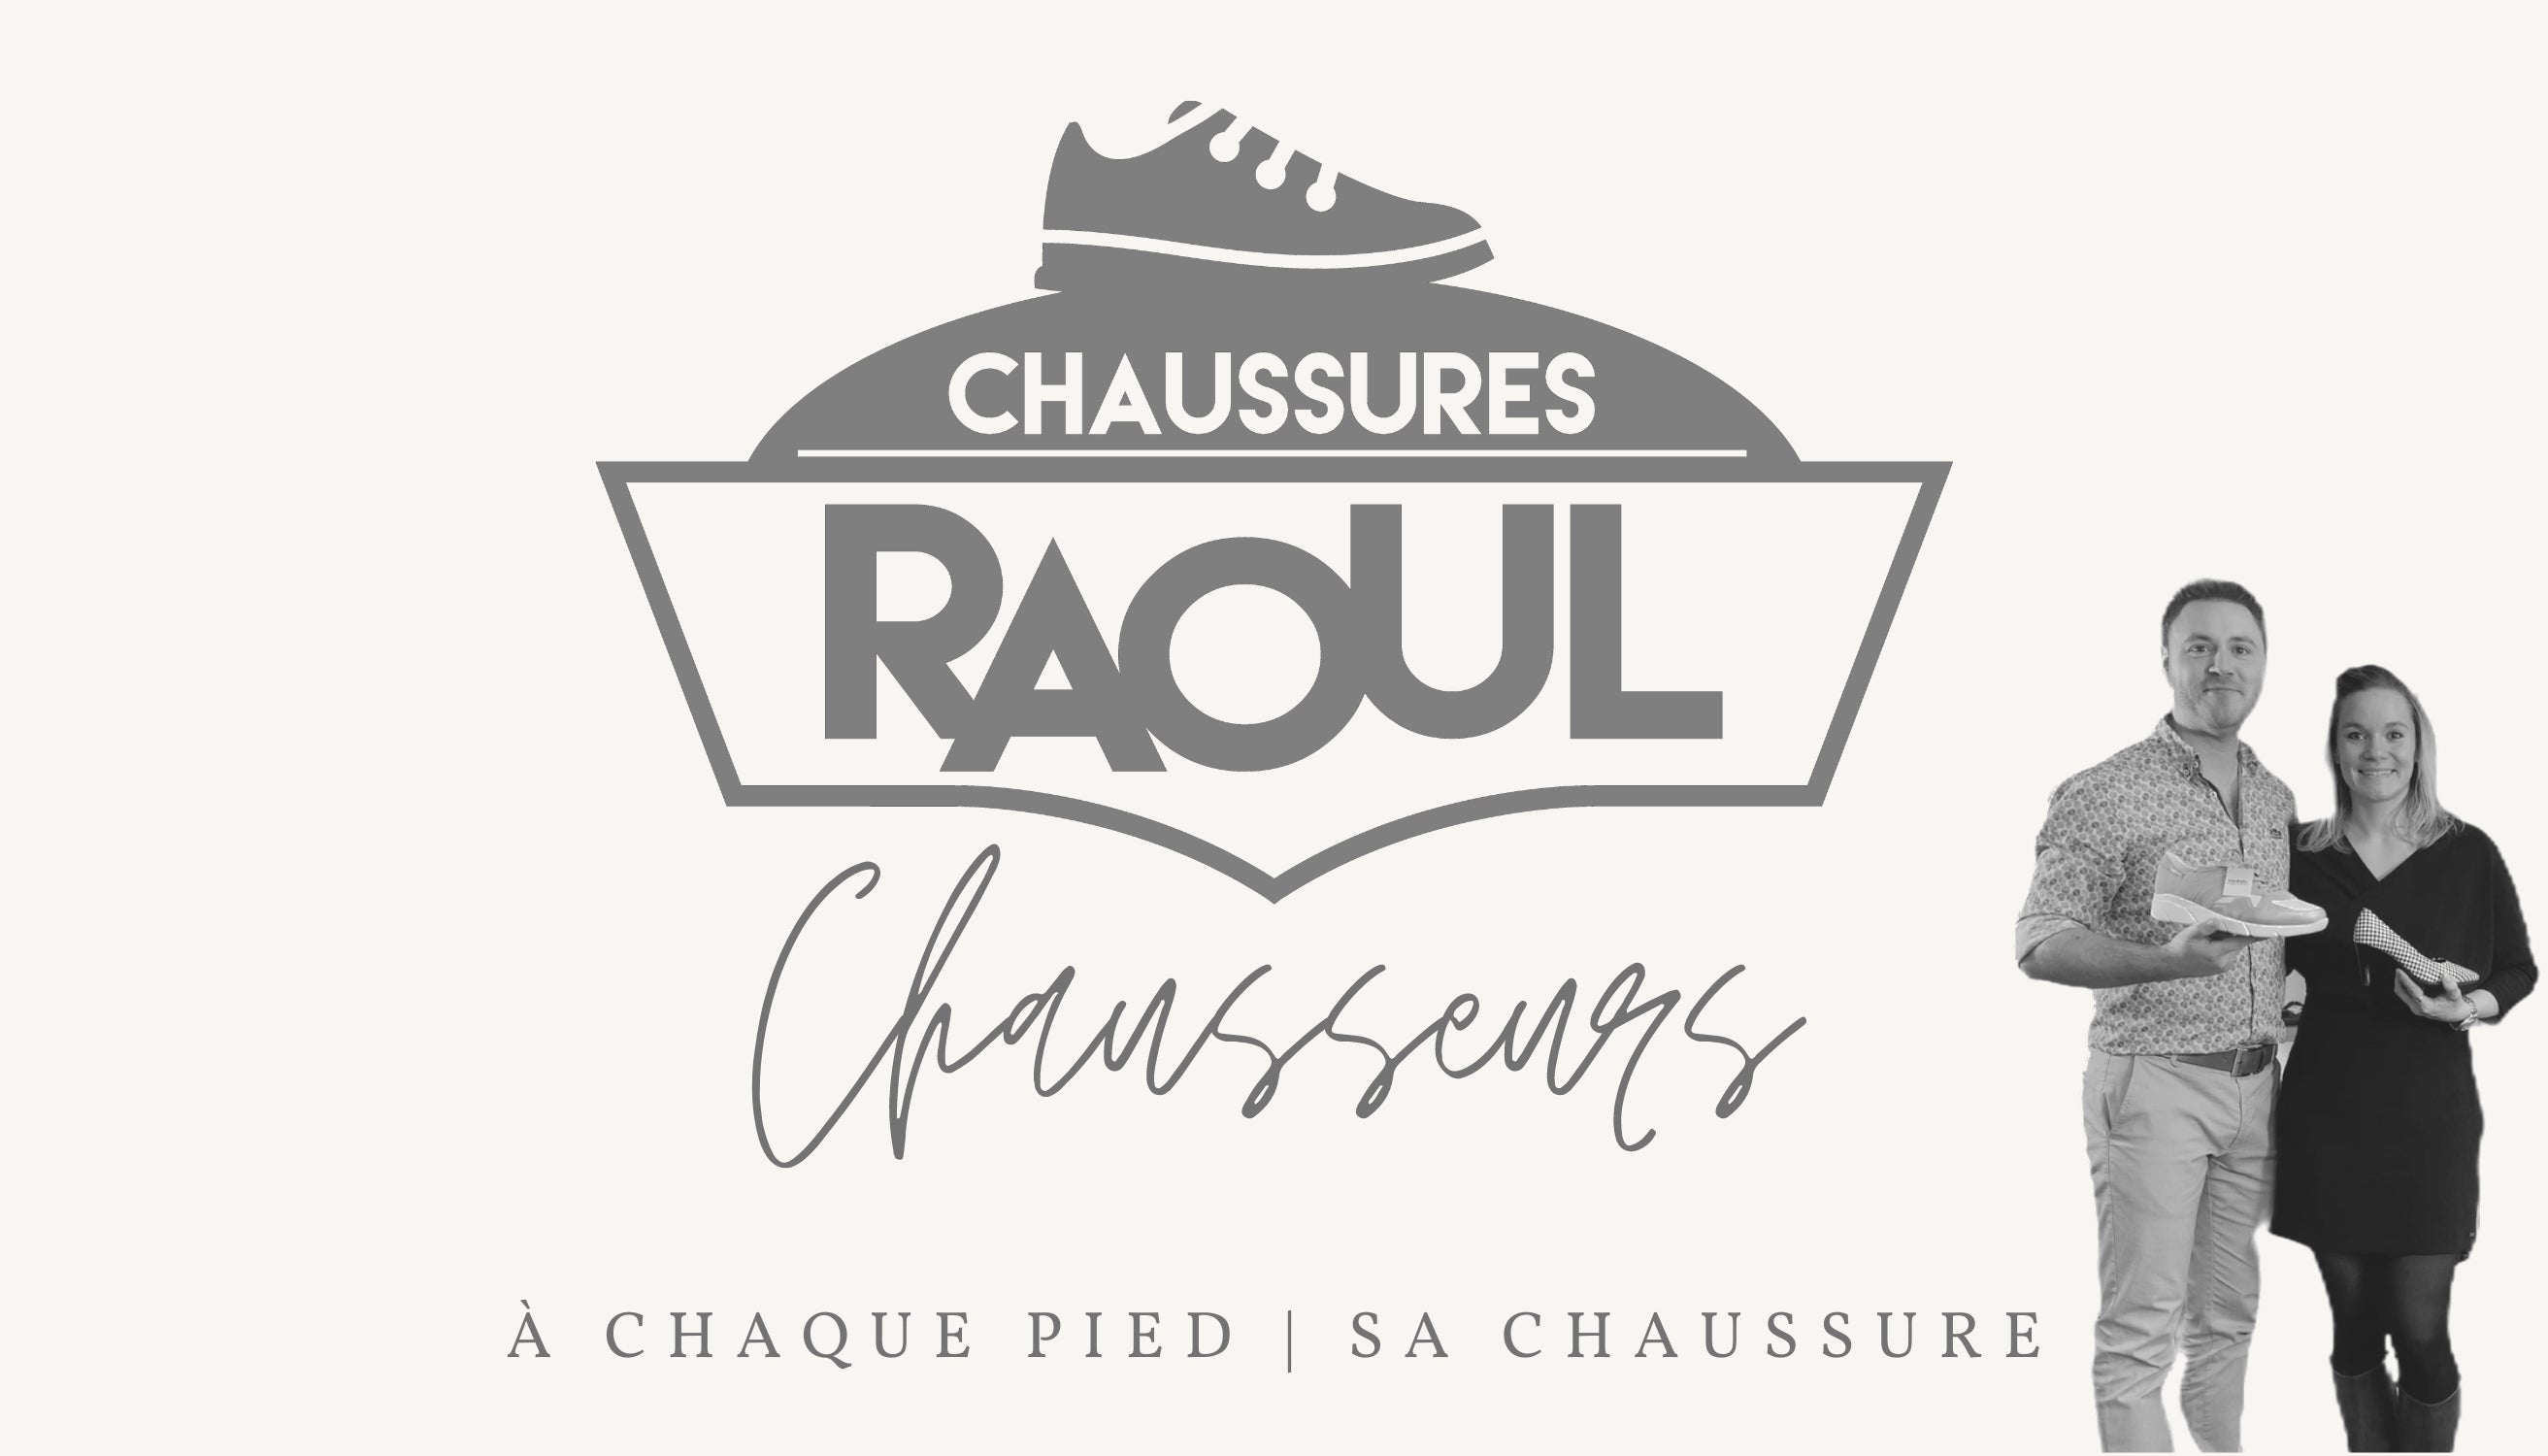 Chaussures Raoul